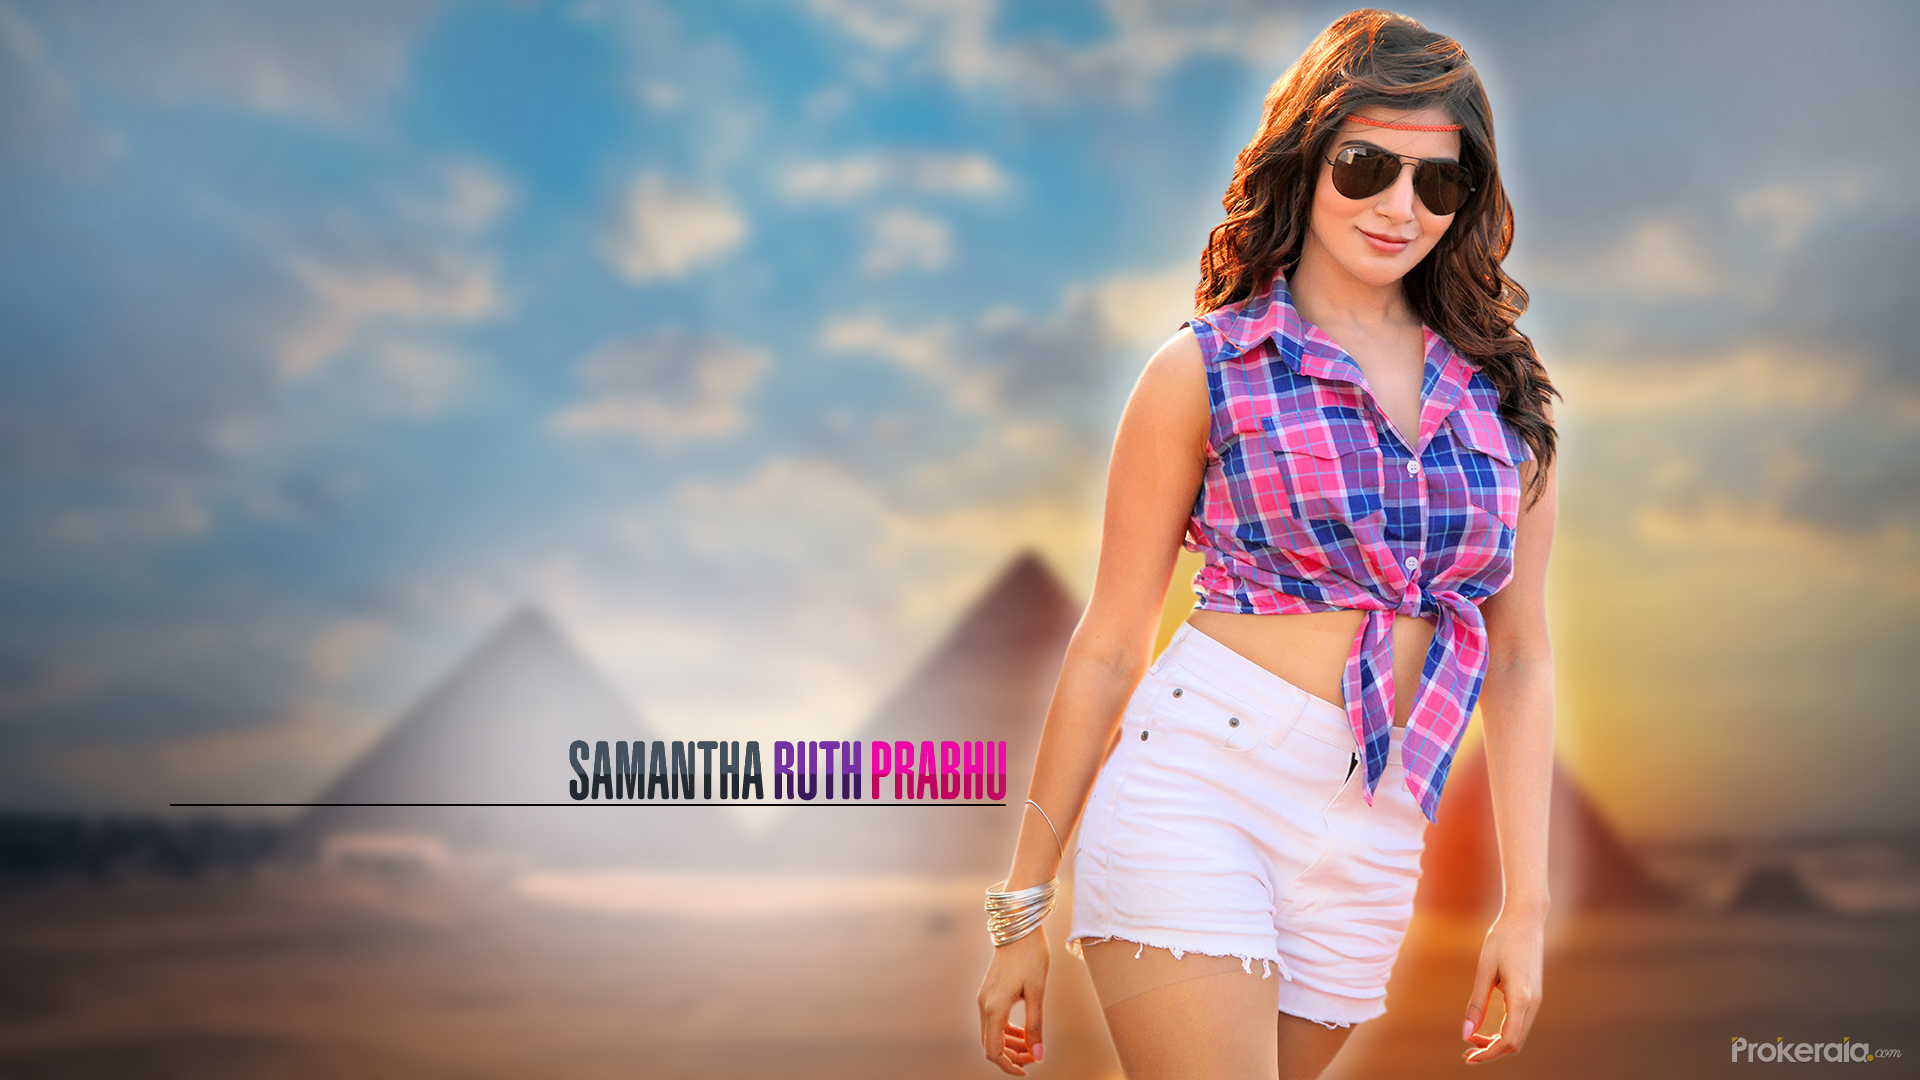 samantha ruth prabhu hd wallpaper in anjaan